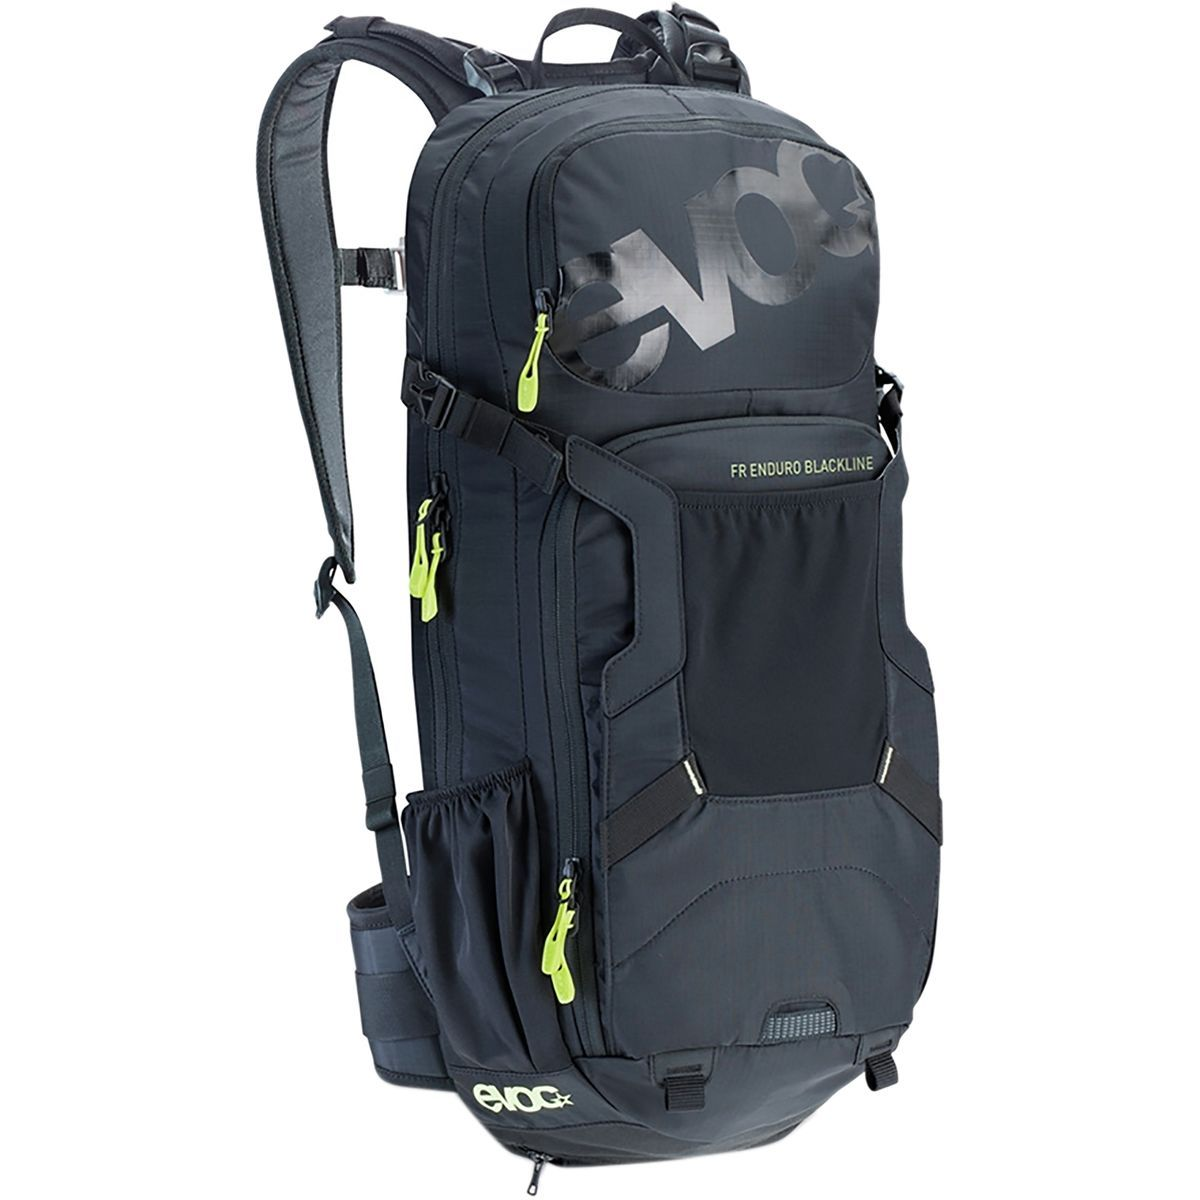 Photo of FR Enduro Blackline Protector Hydration Pack